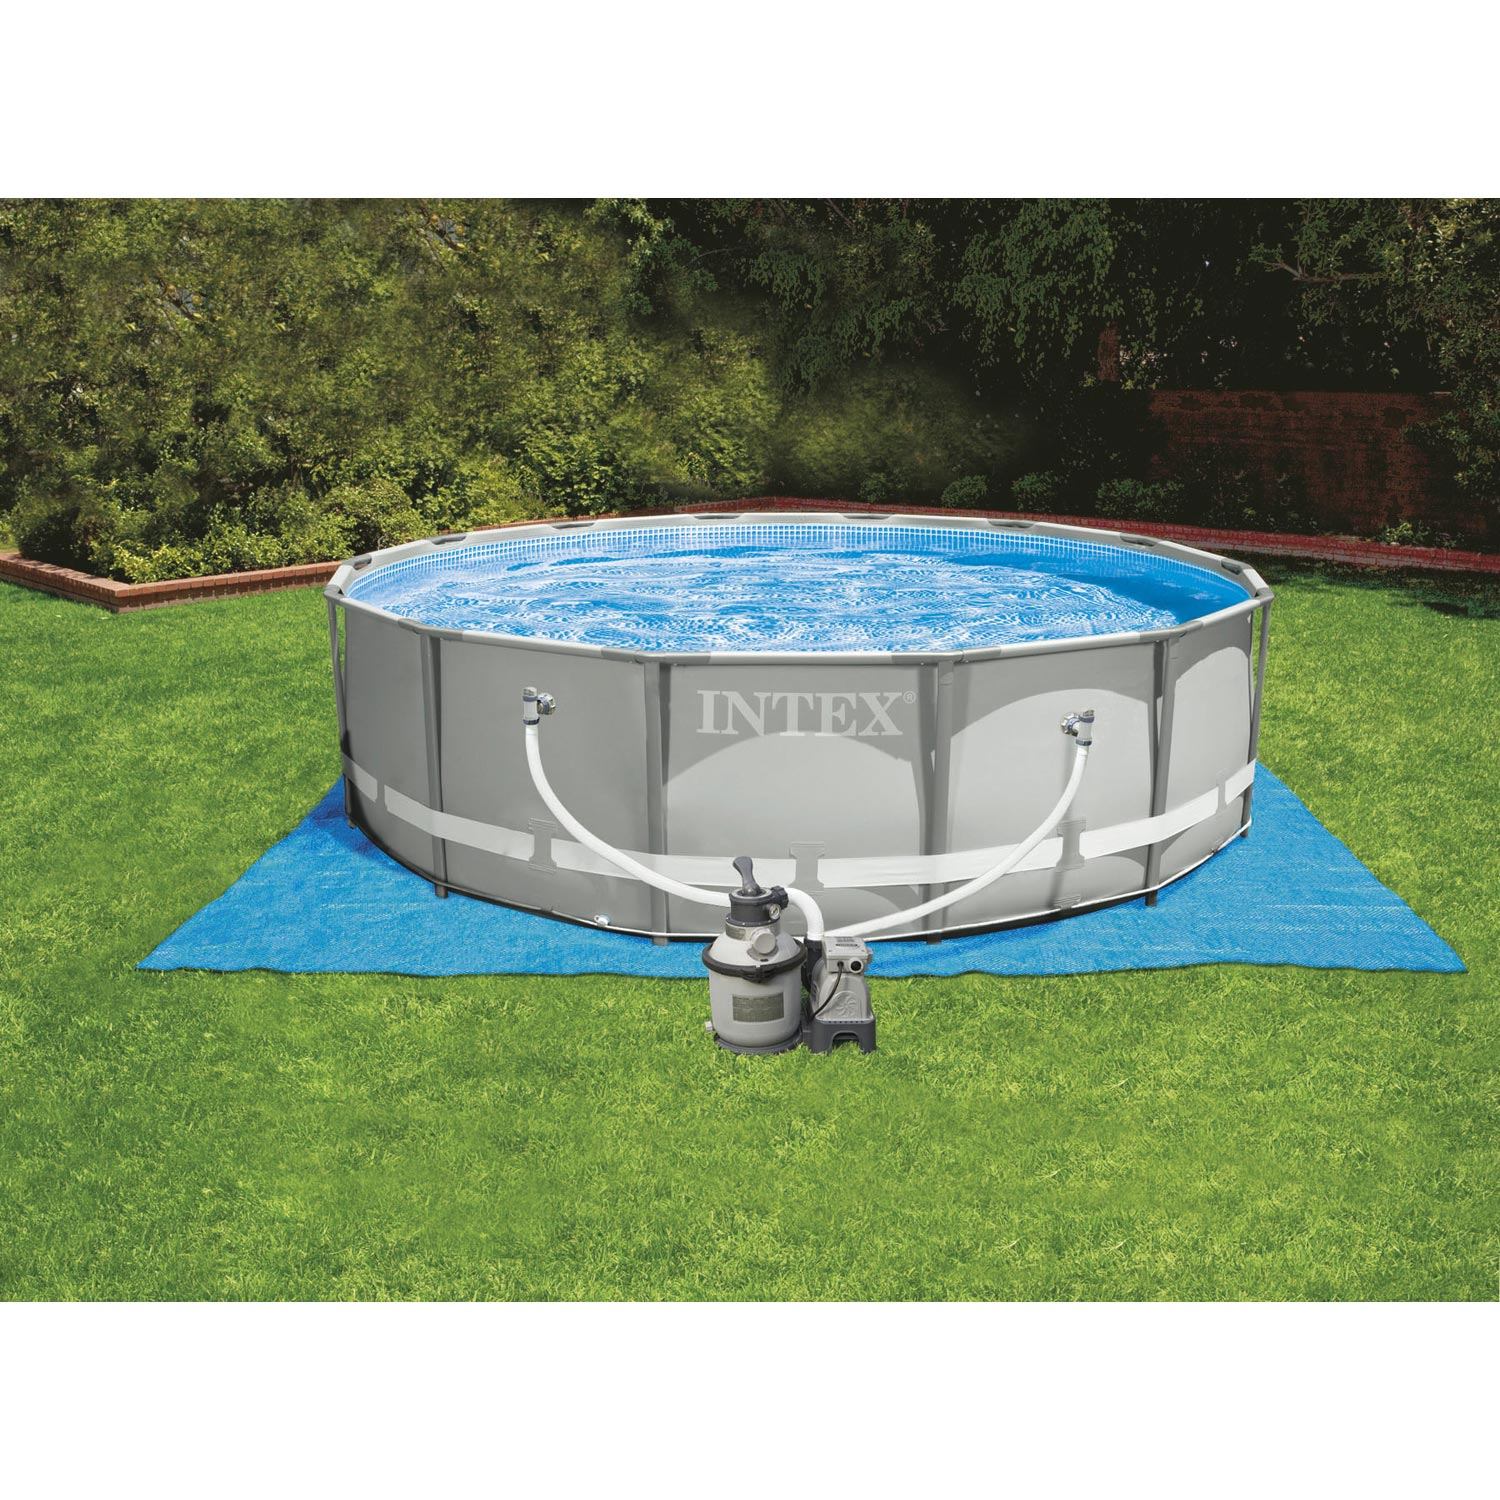 Piscine hors sol autoportante tubulaire ultra frame intex for Pediluve piscine hors sol